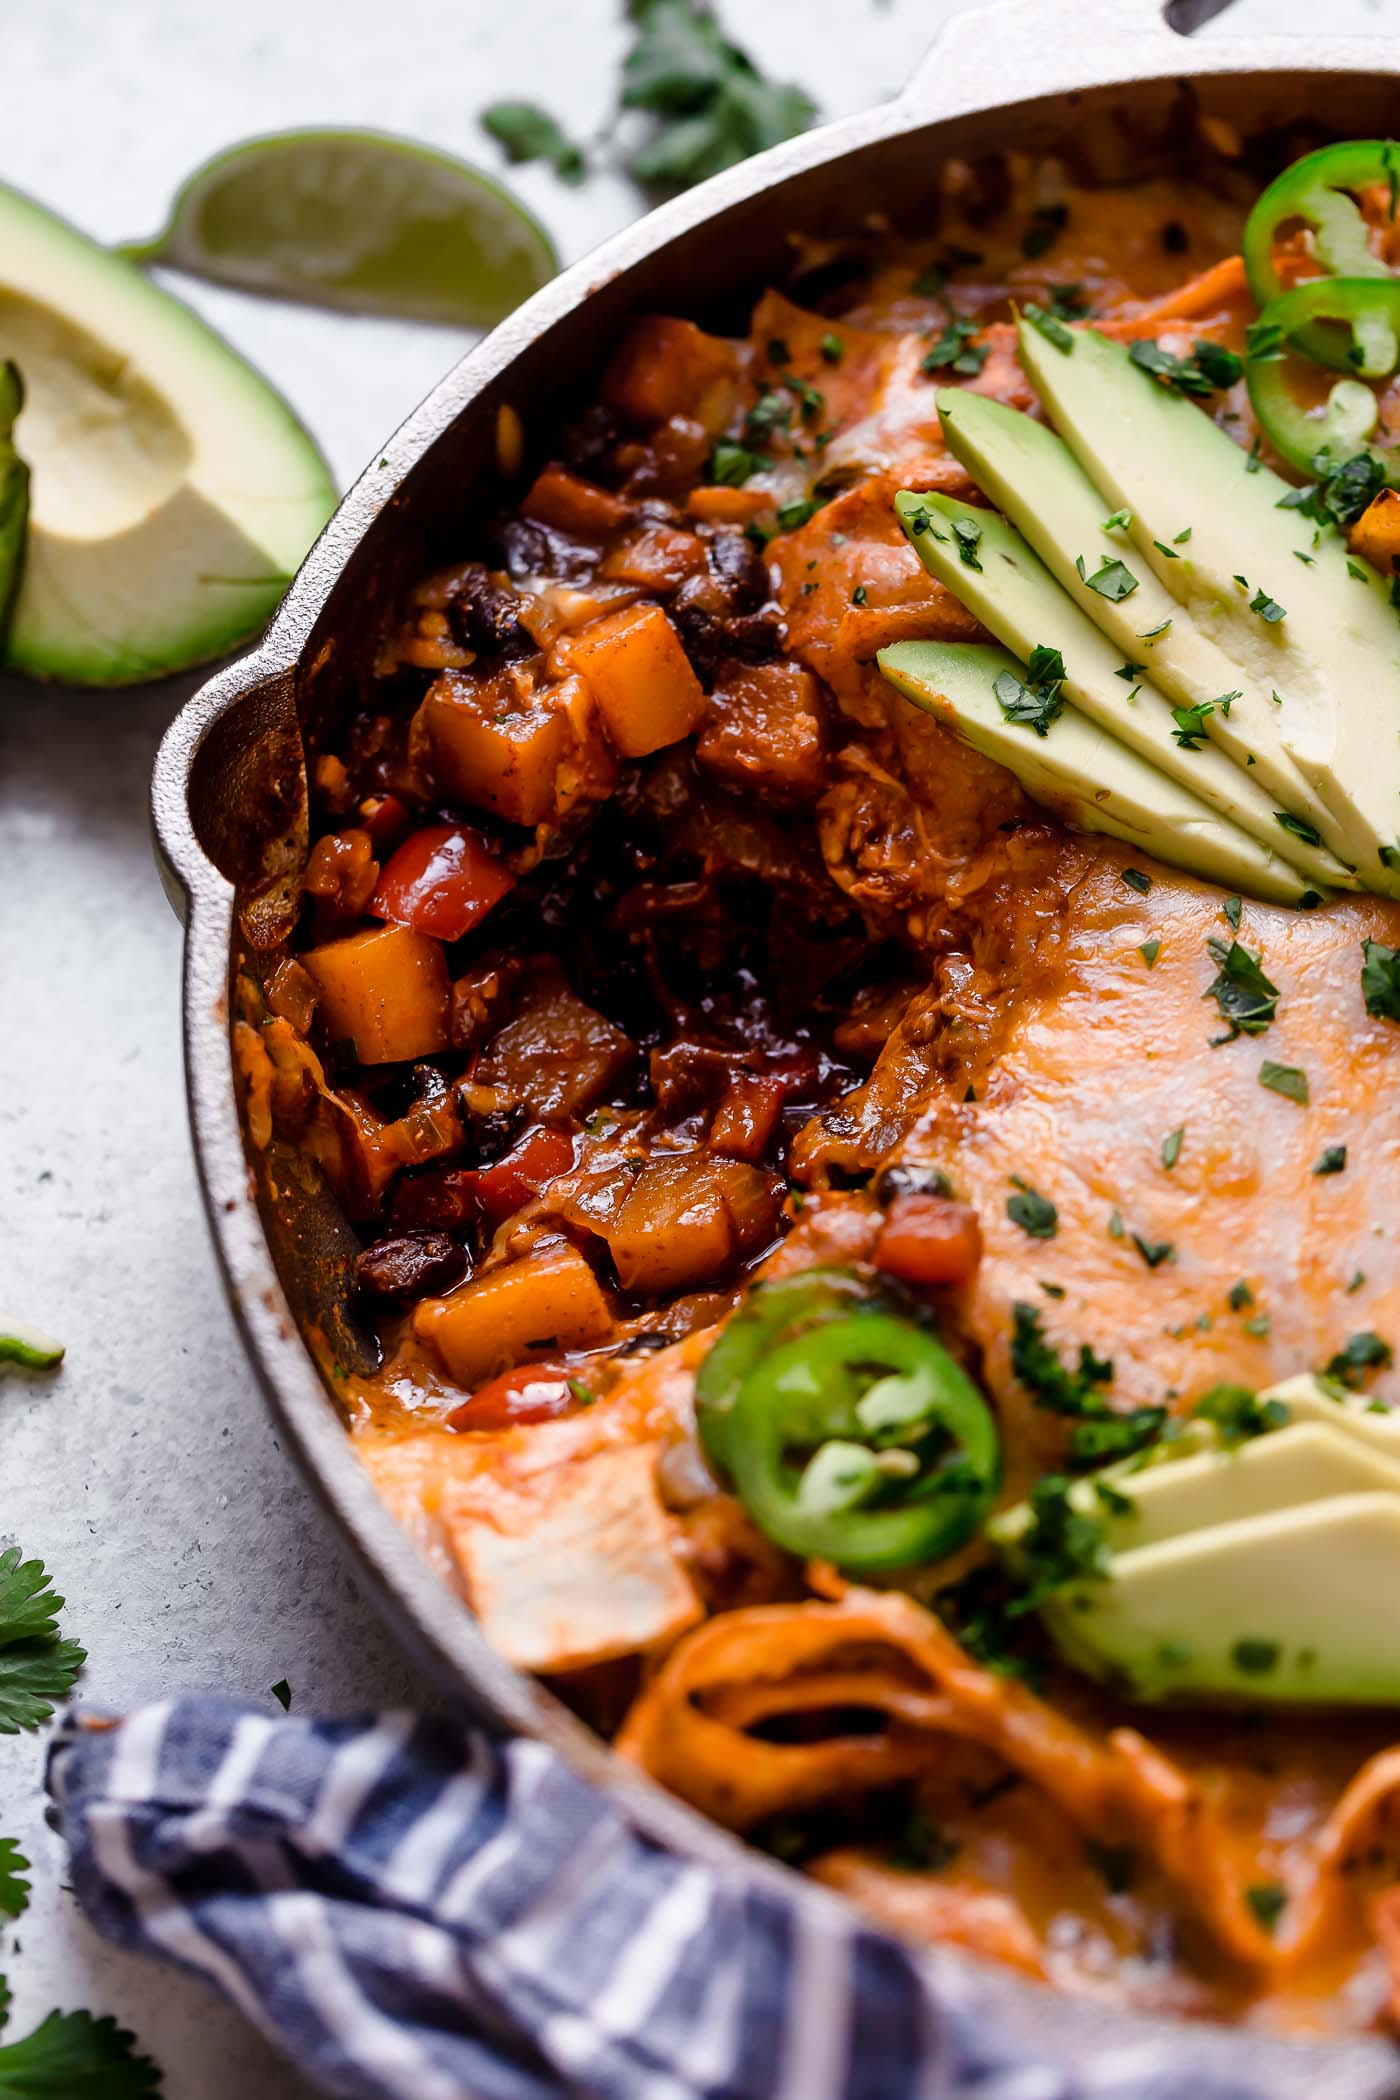 this vegetarian enchiladas skillet is filled with butternut squash, black beans, corn tortilla strips, & a generous layer of melty cheddar cheese. the best part? these vegetarian enchiladas only take 25 minutes to make. weeknight enchiladas for the win! #playswellwithbutter #vegetarianenchiladas #blackbeanenchiladas #skilletenchiladas #vegetarianrecipes #vegetarianrecipesforbeginners #vegetarianenchiladas #easyvegetarianenchiladas #butternutsquash #enchiladas #skilletmeals #easyskilletrecipe